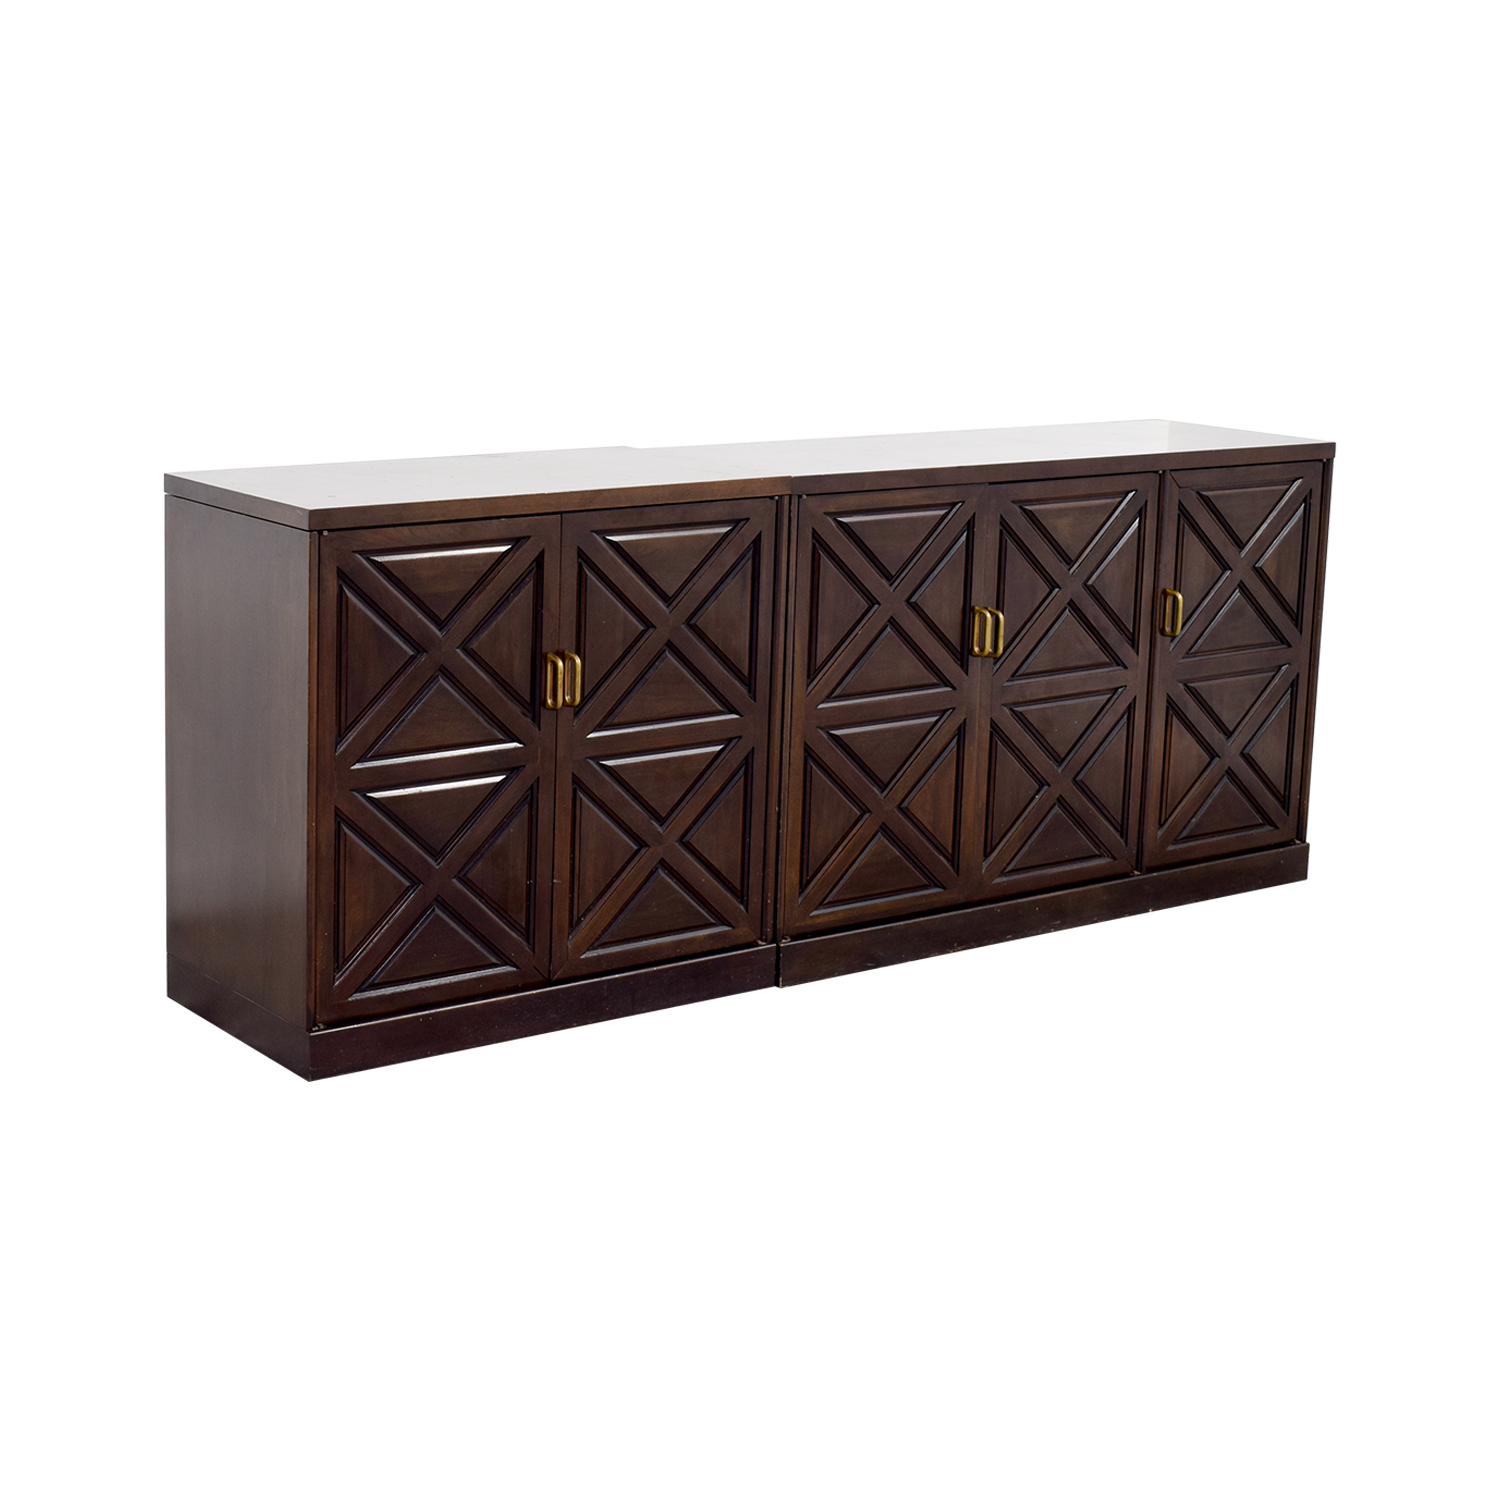 Mahogany Sideboard with Drawers and Shelves coupon